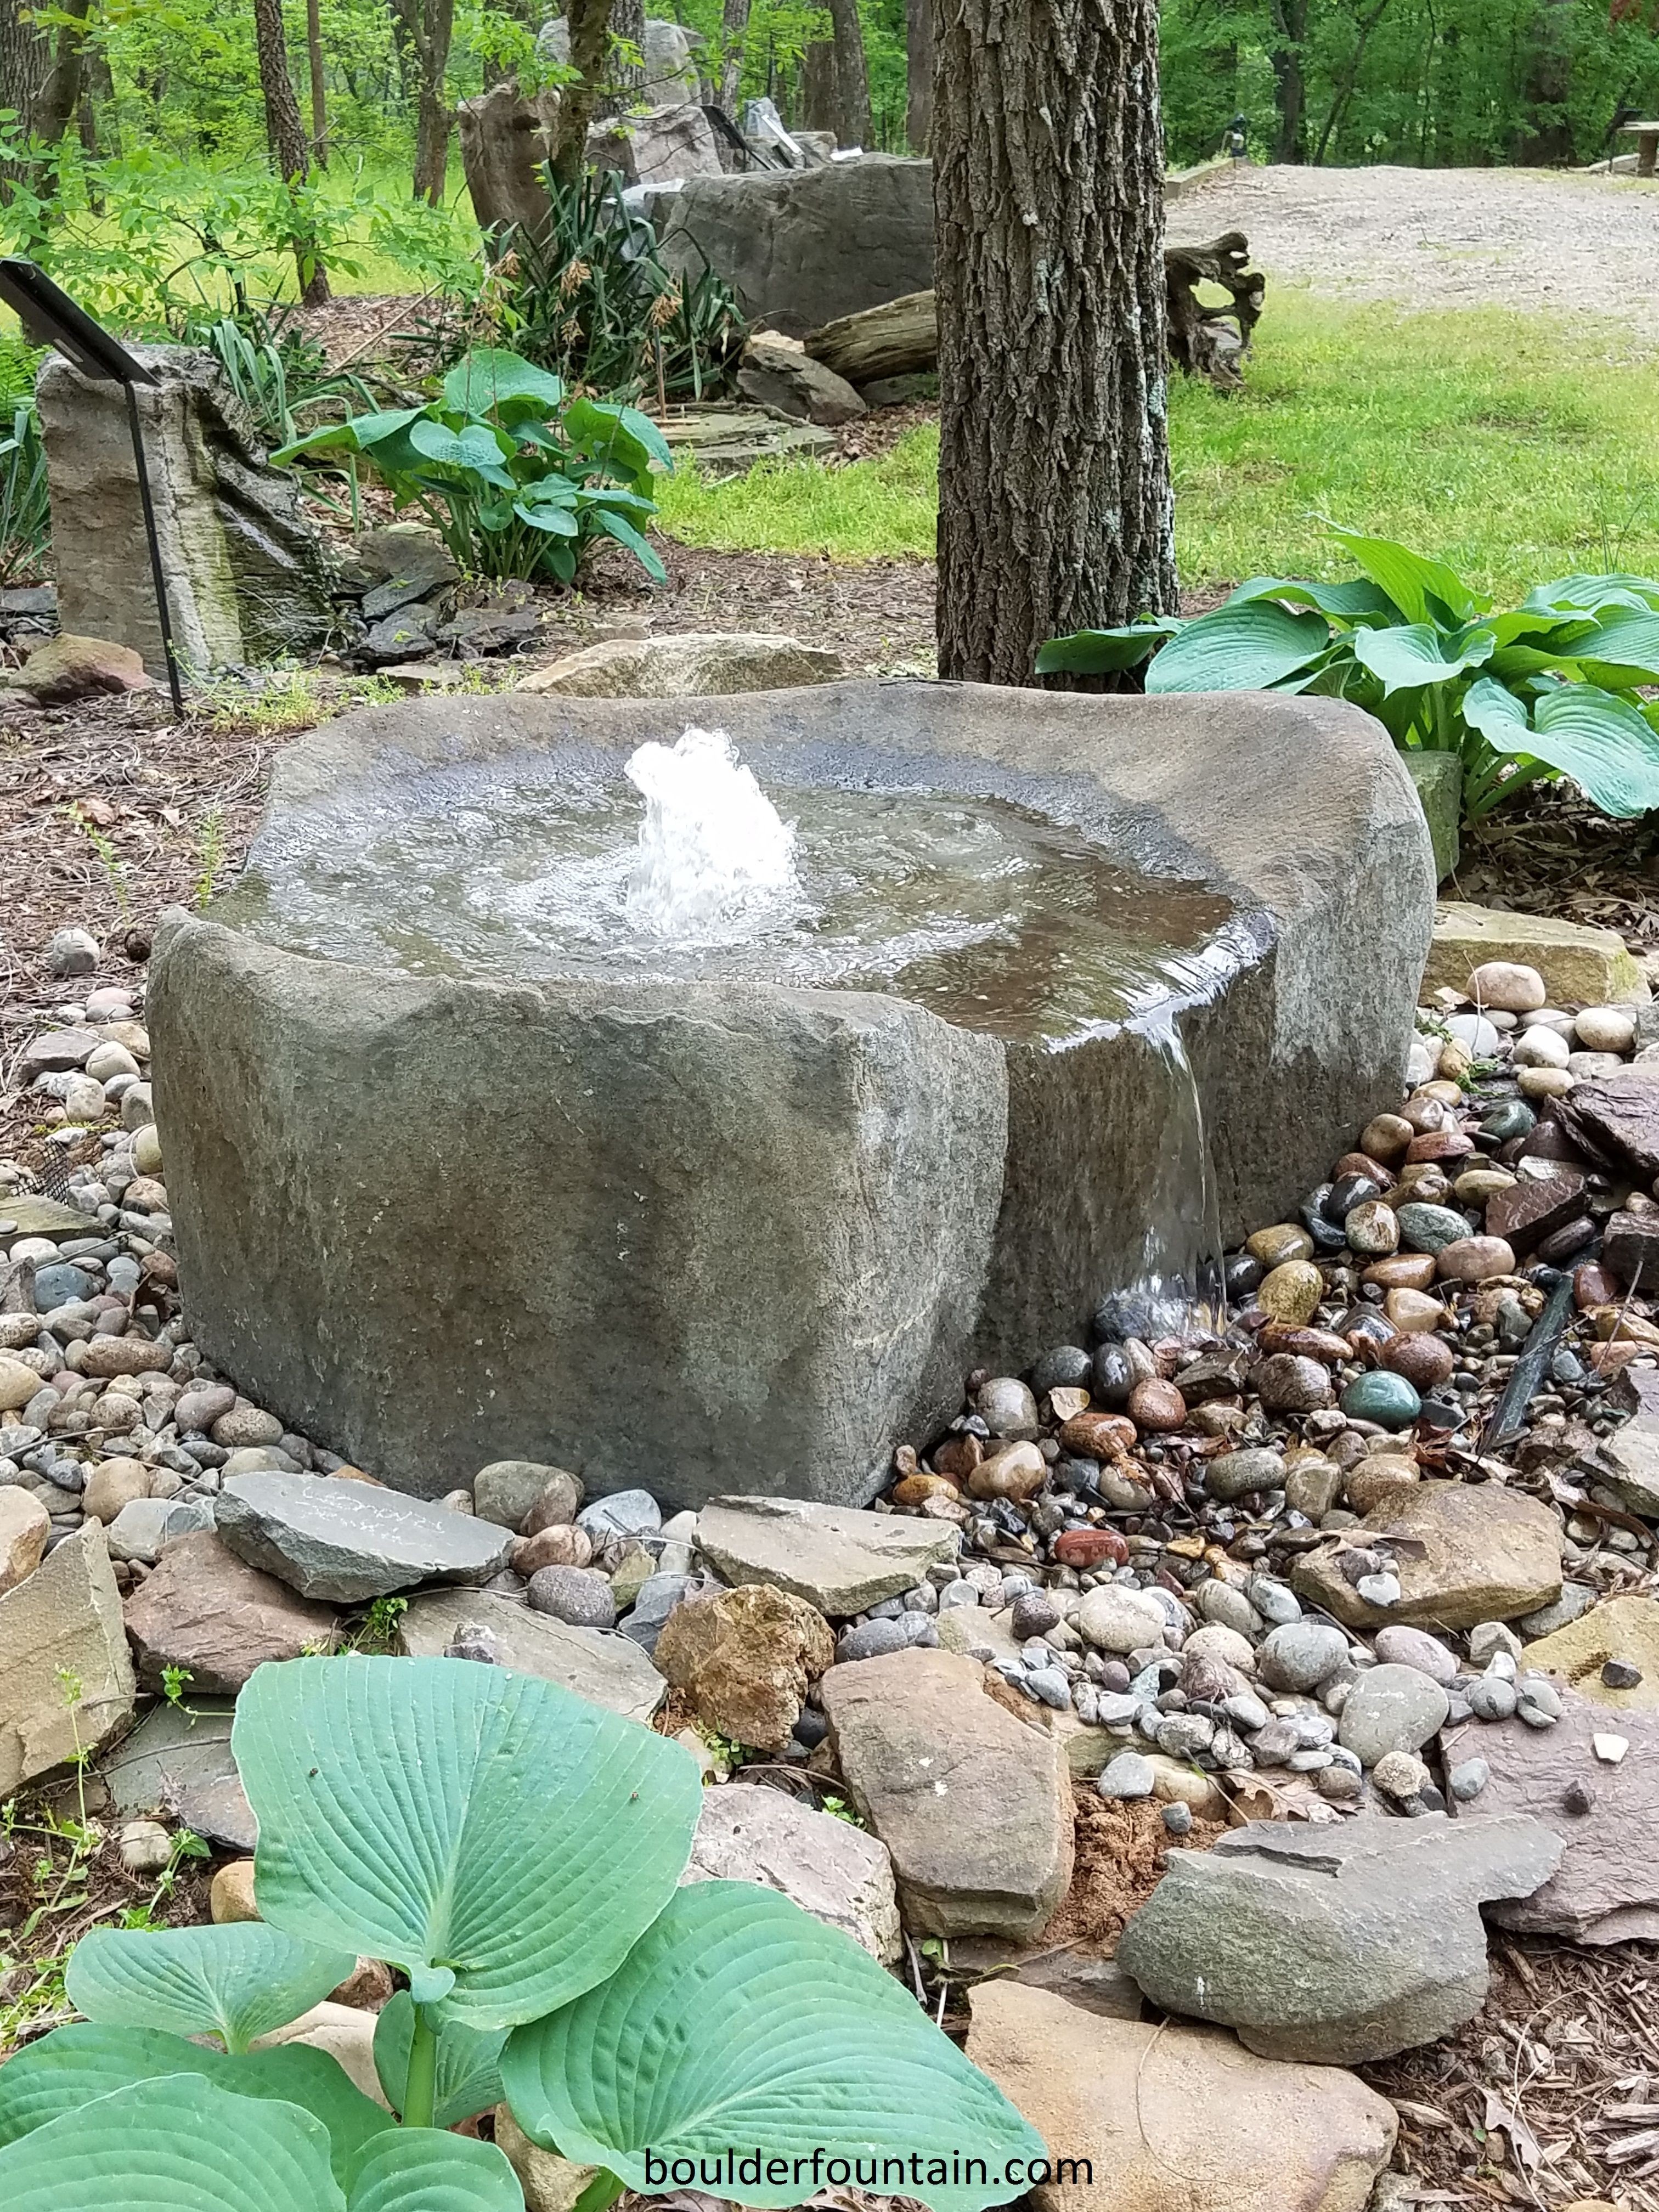 Kentucky Basalt Bowl Garden Fountain For More Info Including Videos Pricing Visit Us At Www Bo Water Fountains Outdoor Stone Water Features Garden Fountains